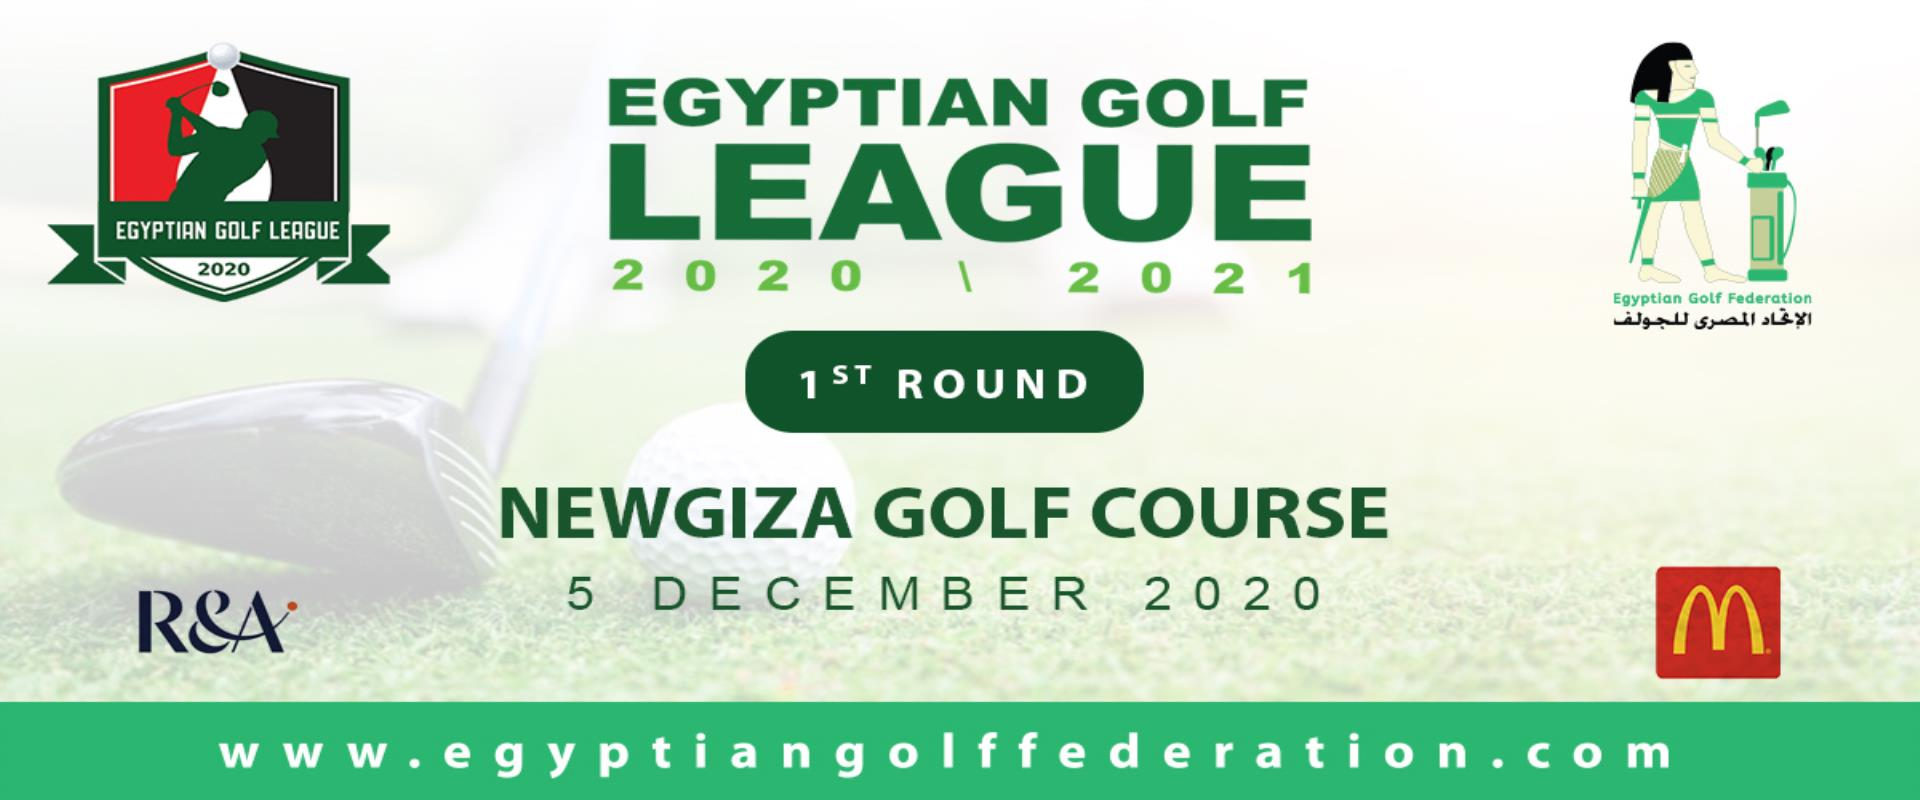 7 clubs compete for the Egyptian Golf League